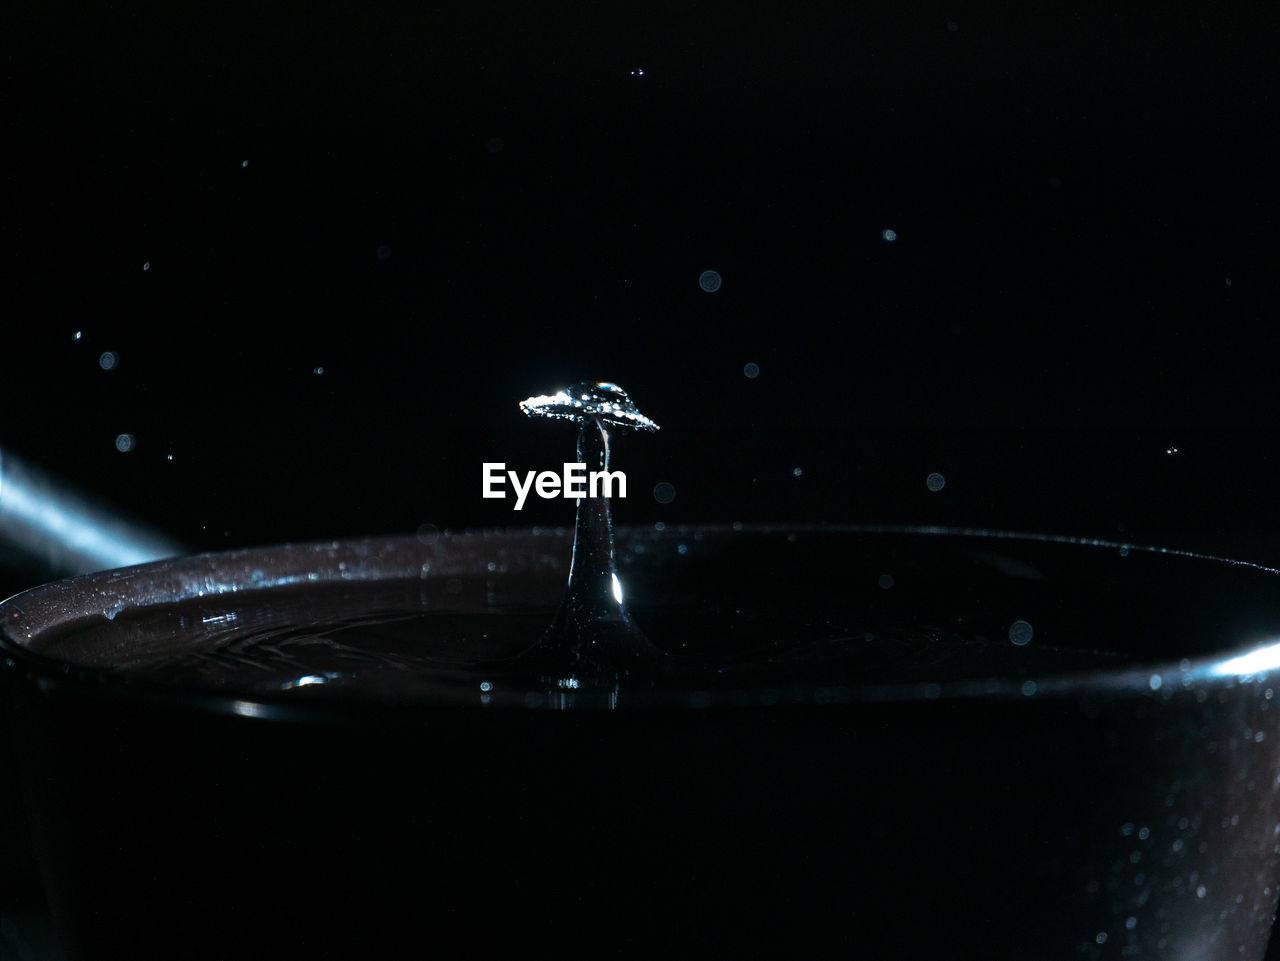 drop, water, motion, close-up, splashing, refreshment, no people, drink, glass, indoors, food and drink, nature, high-speed photography, studio shot, rippled, freshness, household equipment, selective focus, black background, purity